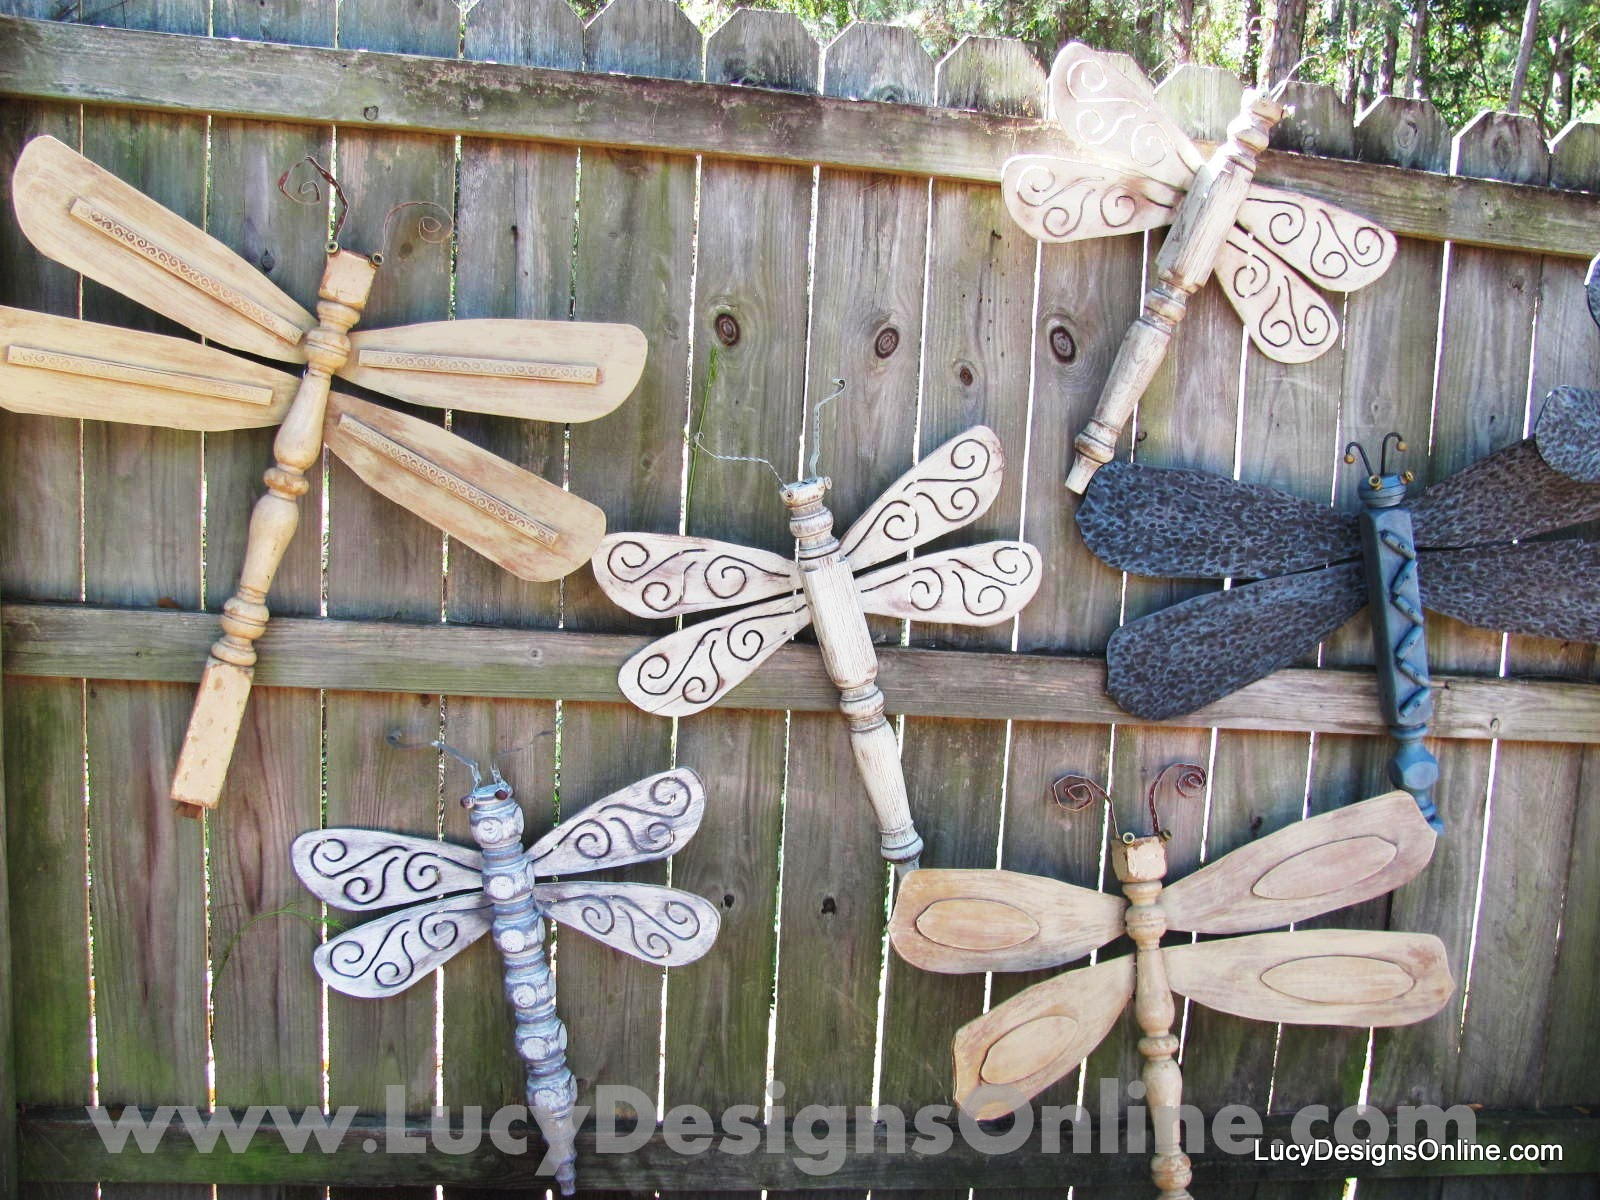 The original table leg dragonflies with ceiling fan blade wings the original table leg dragonflies with ceiling fan blade wings mozeypictures Choice Image